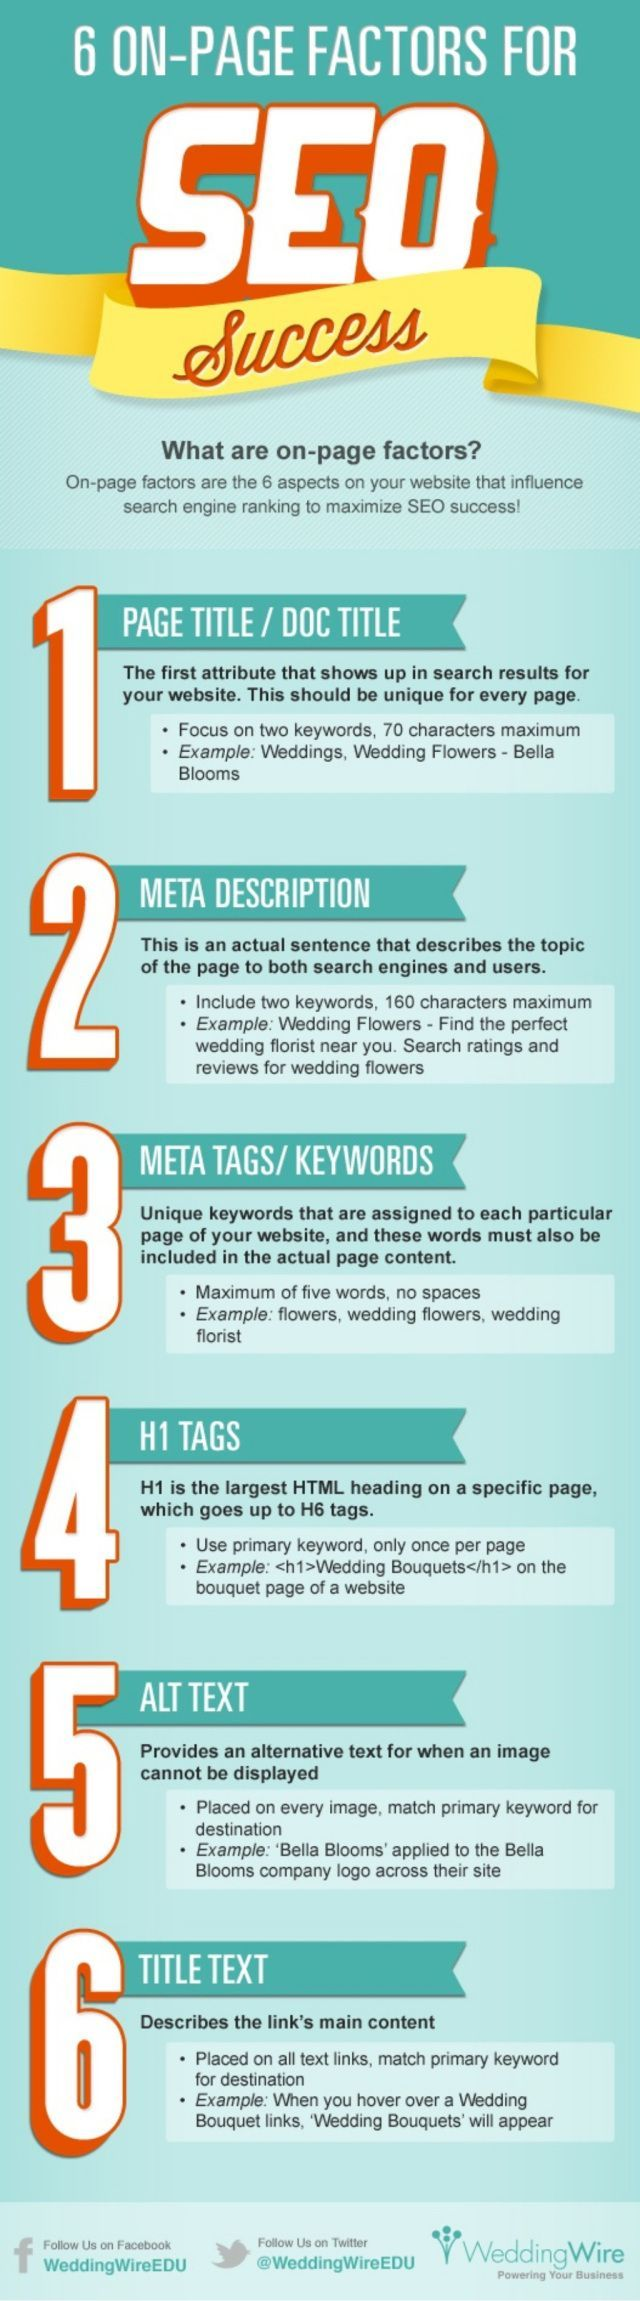 6 key on-page factors for successful search engine optimisation (SEO)   #ZealousWD  #SEO